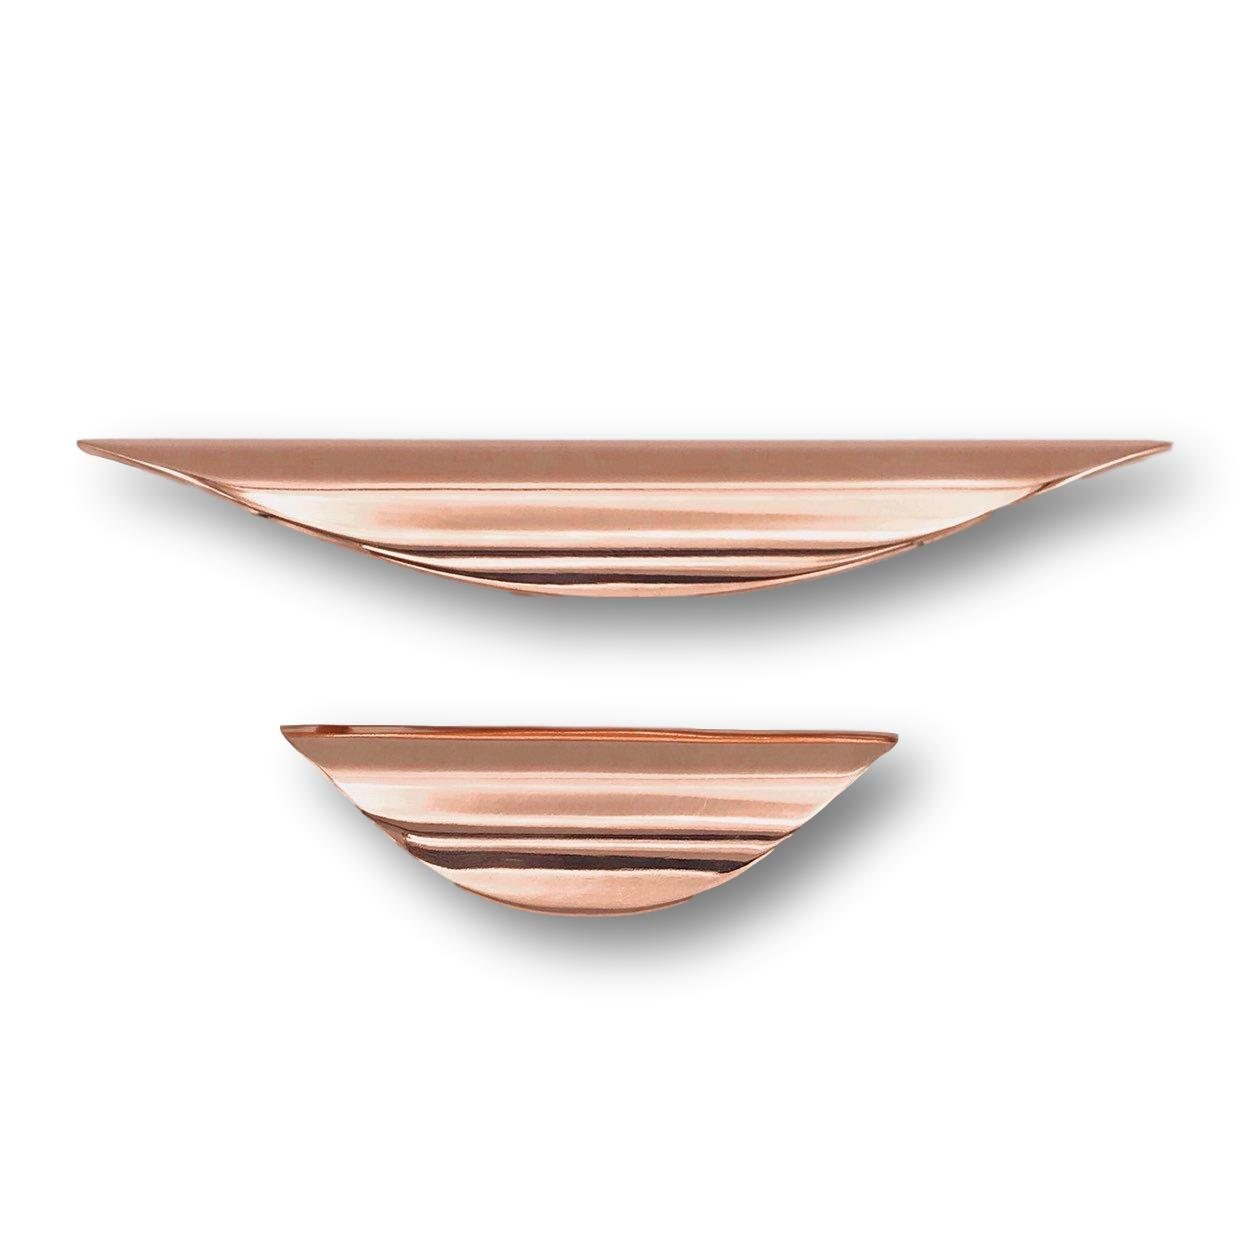 Kitchen Door Handles-copper hardware-copper Copper and Chrome Pull handle Kitchen Cabinet Pulls Cabinet Hardware Drawer Pulls